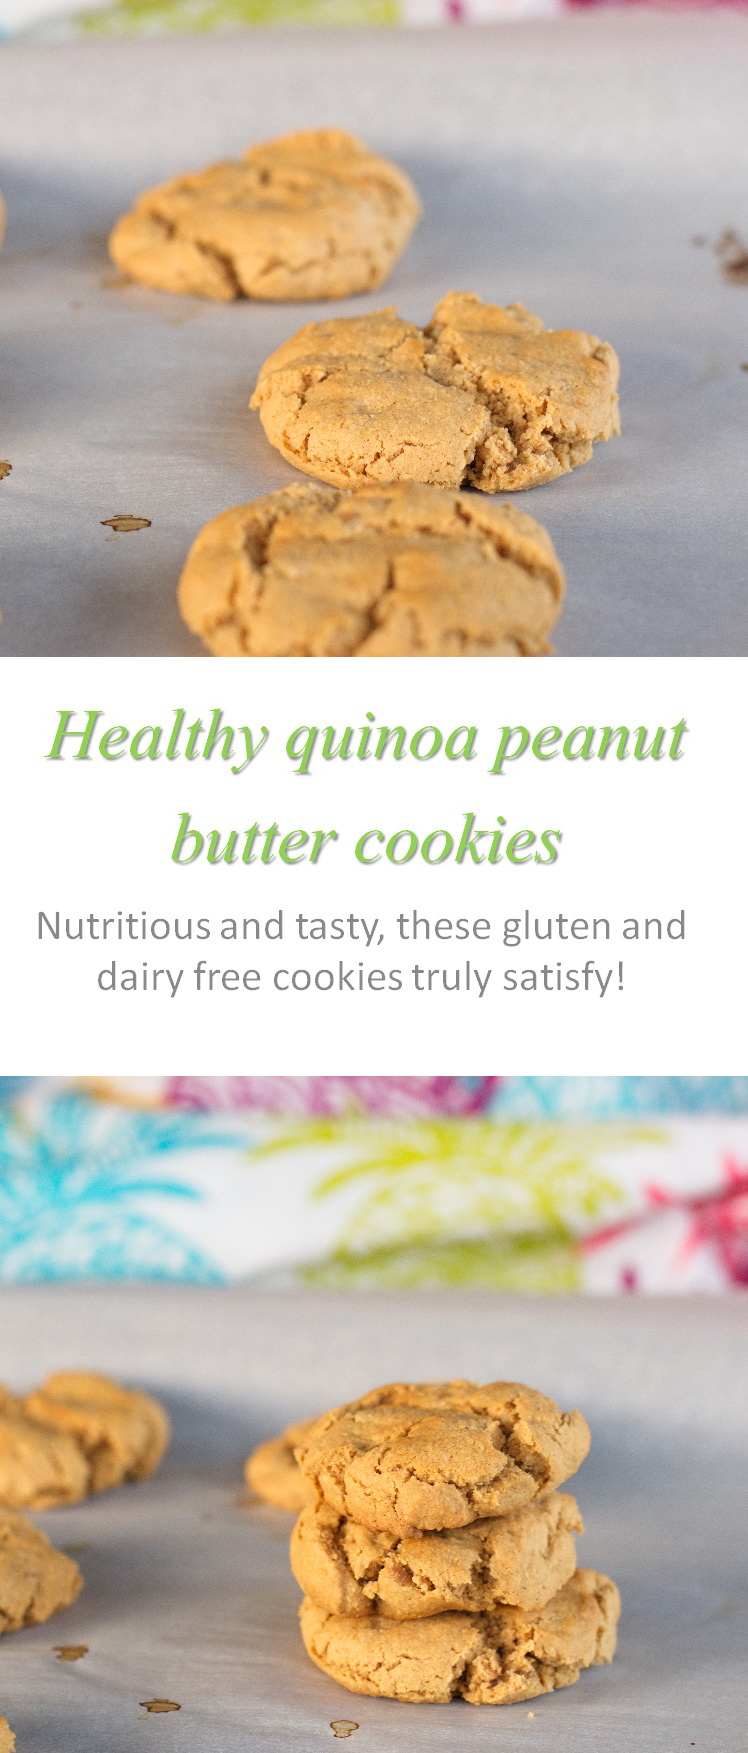 A gluten-free and dairy-free without refined sugar quinoa peanut butter cookie that is yummy! #quinoa #peanutbutter #cookathome #glutenfree #dairyfree